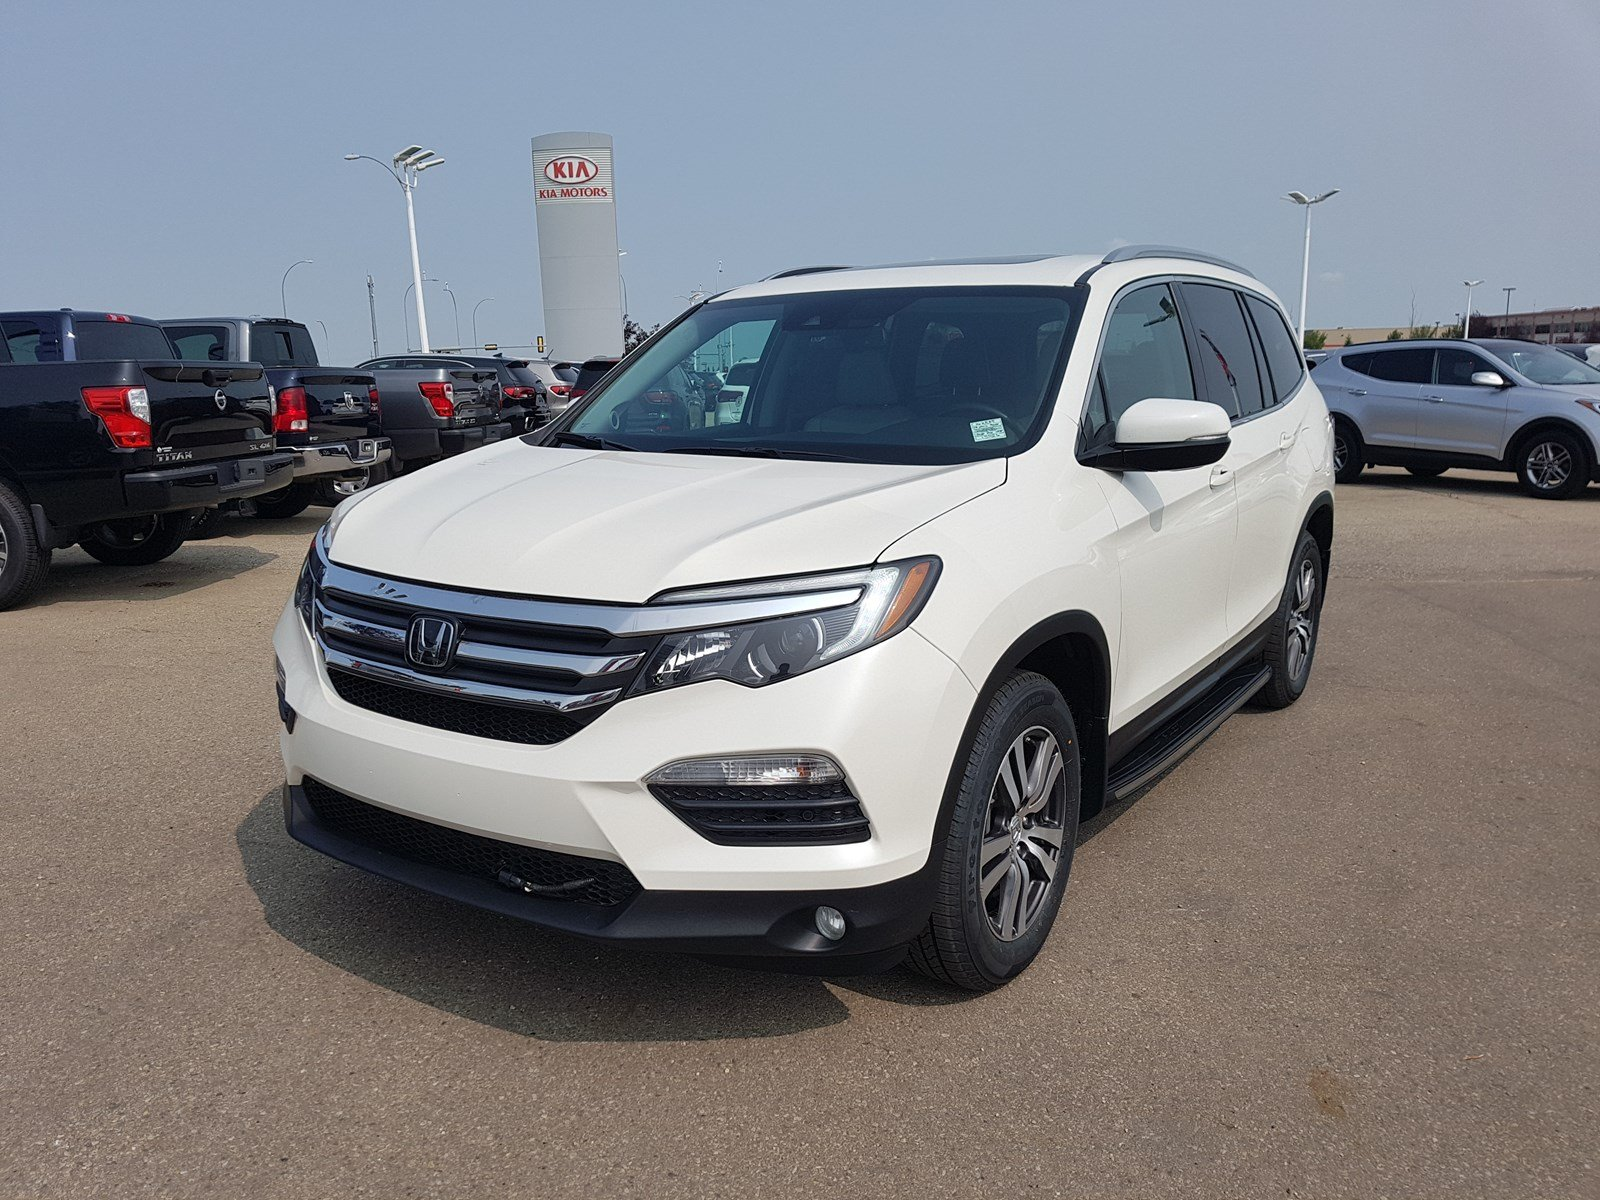 Pre Owned 2016 Honda Pilot AWD EX L Navigation (GPS), Leather